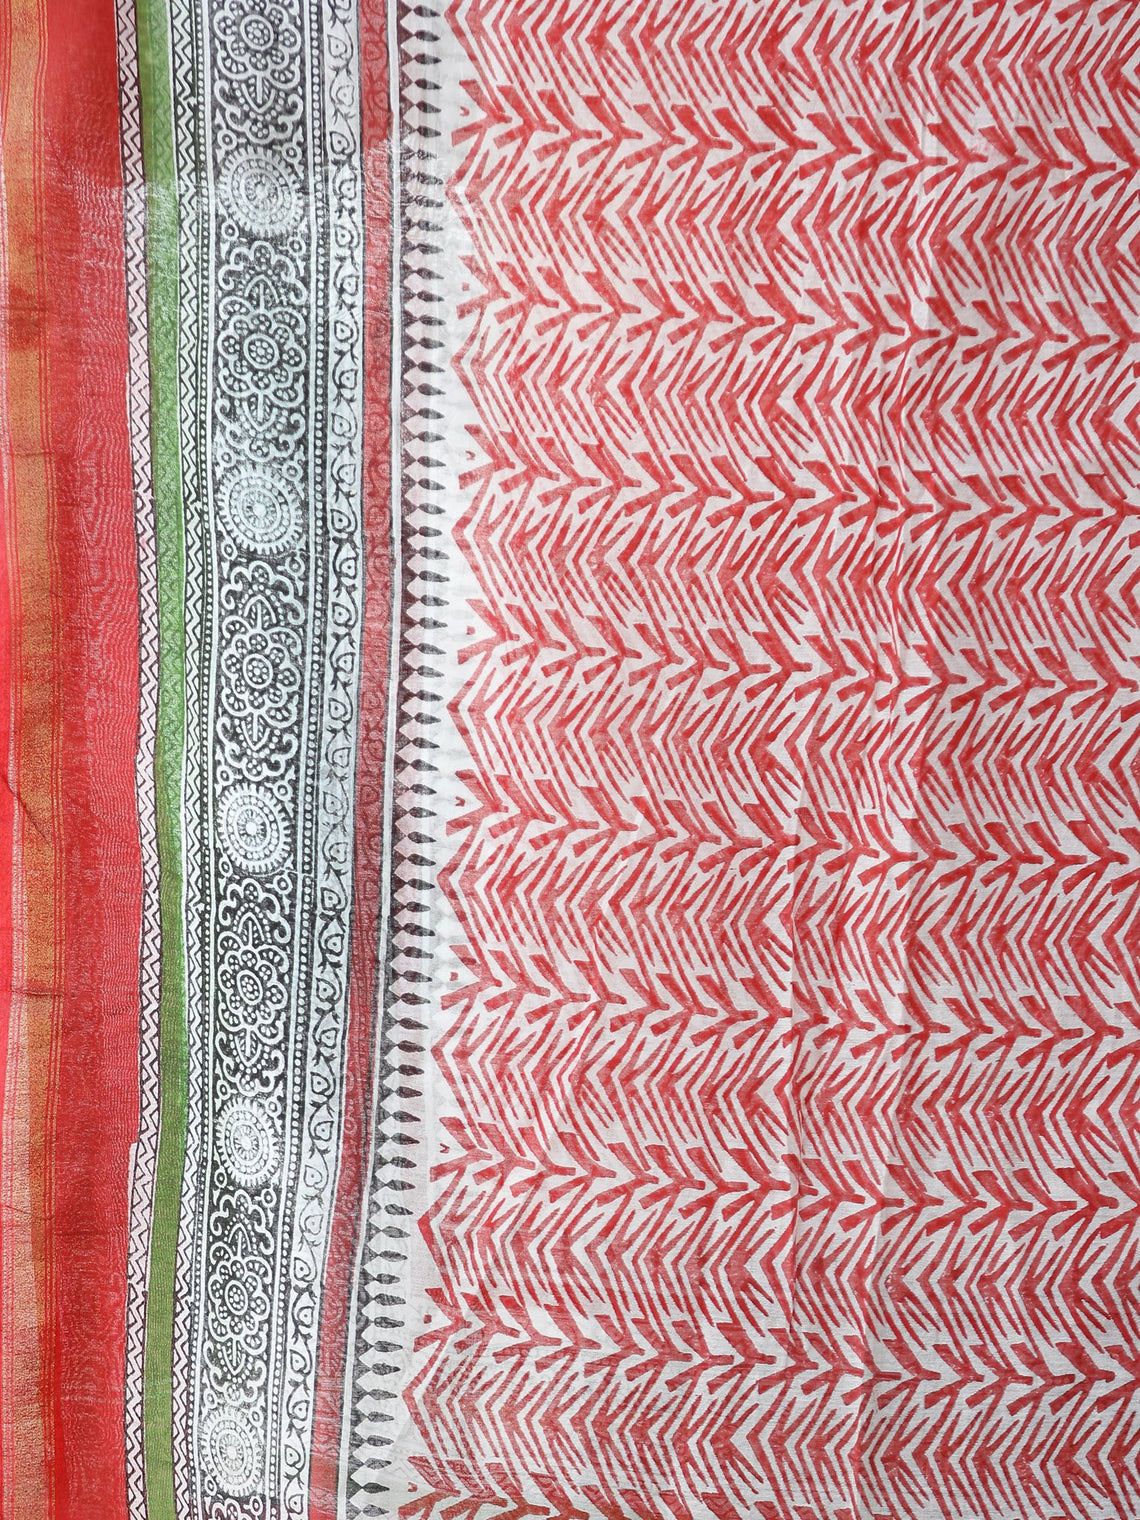 Coral White Green Chanderi Hand Block Printed Dupatta - D04170565